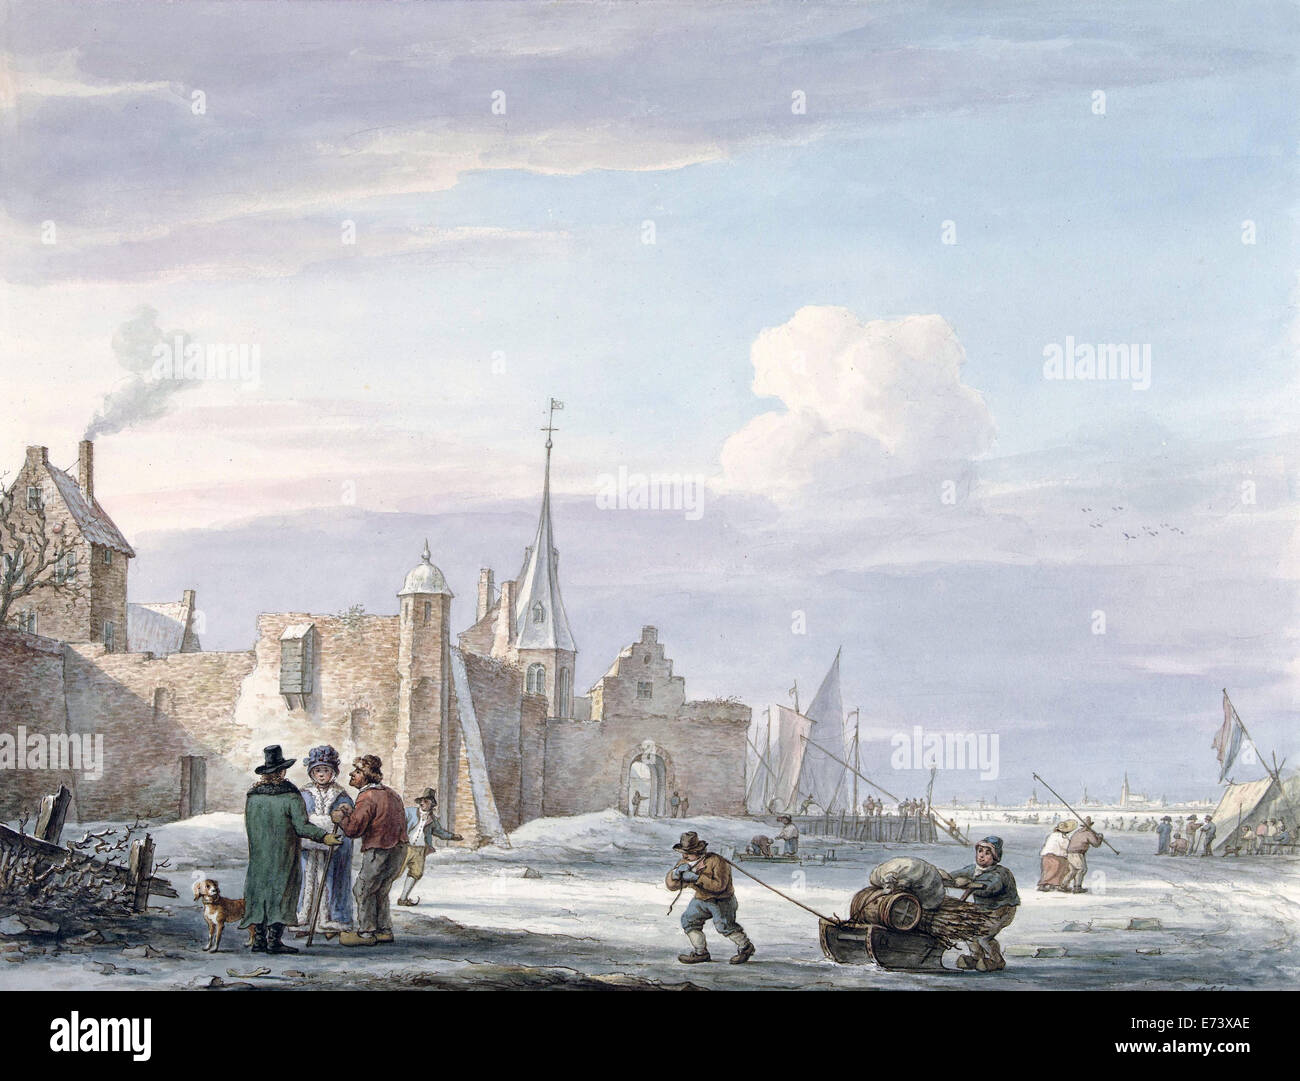 City Scene in Winter - by Martinus Schouman, 1780 - 1848 - Editorial use only. - Stock Image